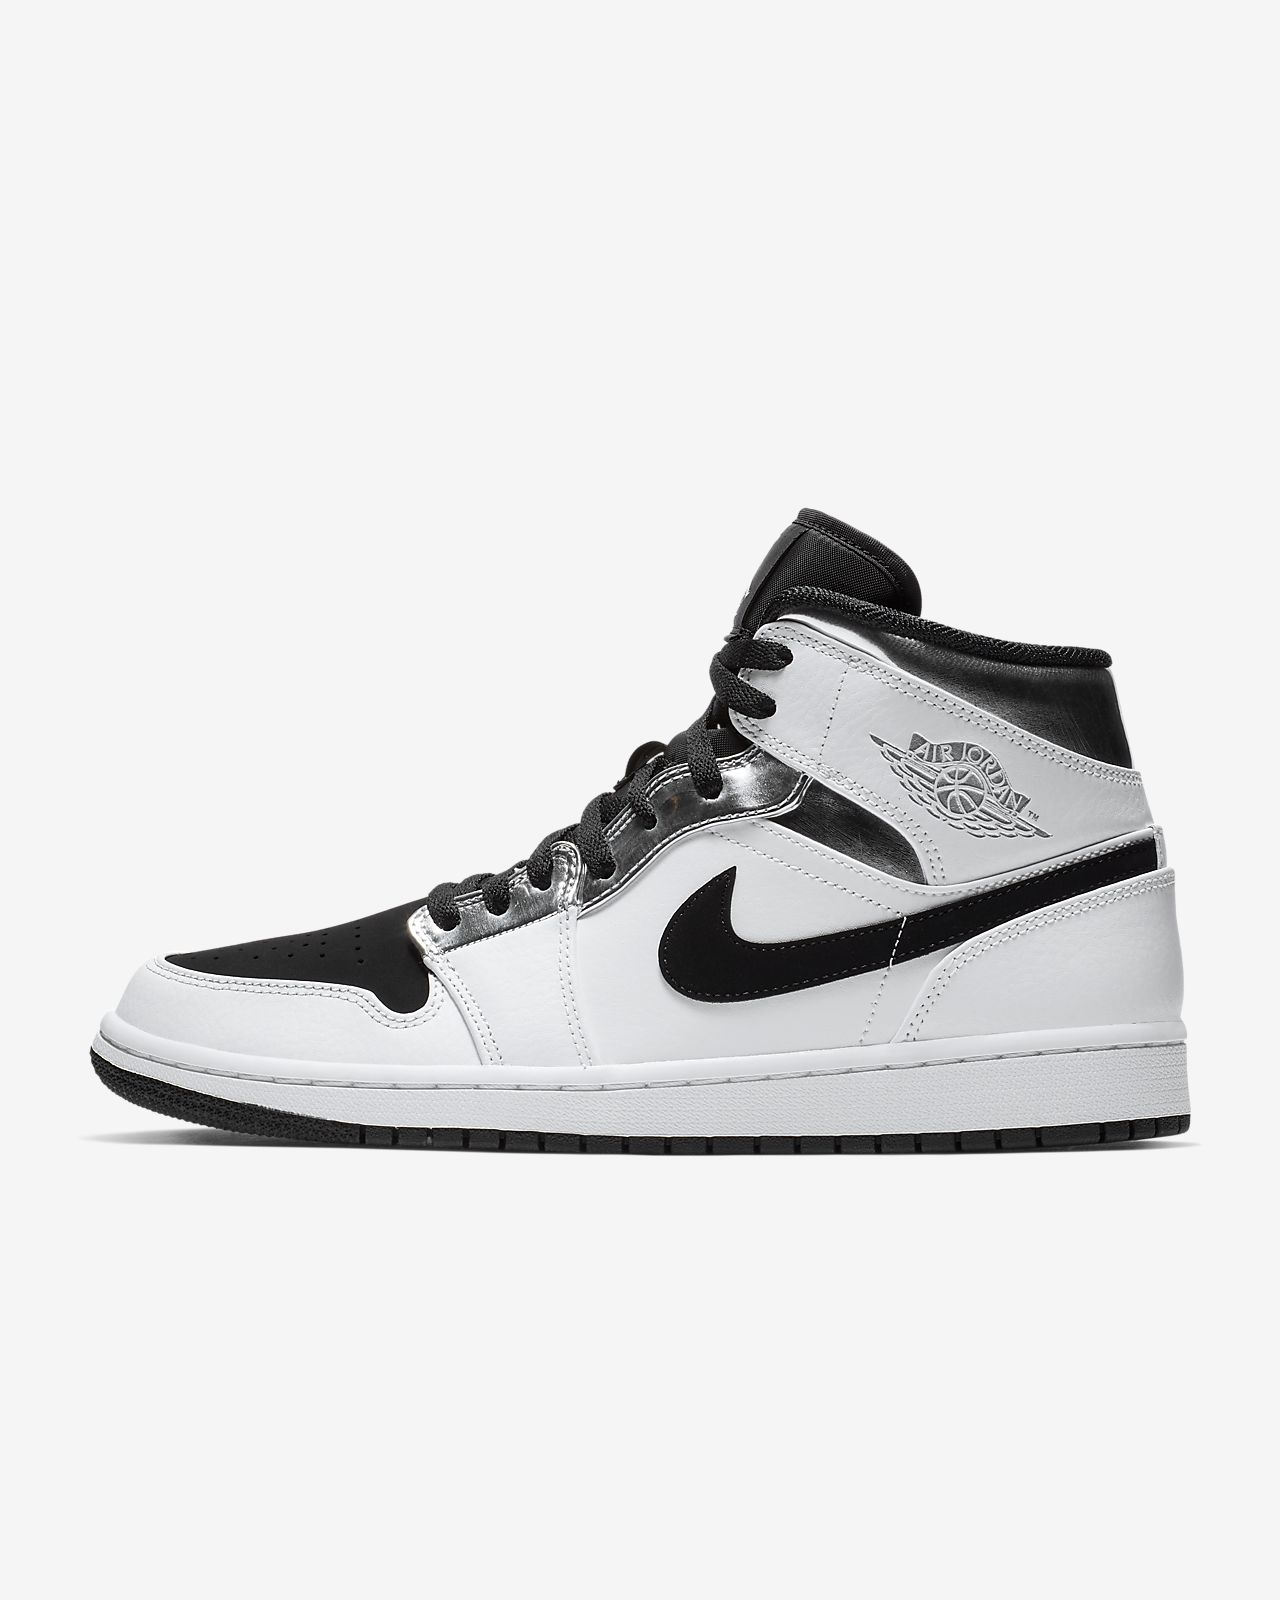 a4919d92916514 Air Jordan 1 Mid Men s Shoe. Nike.com